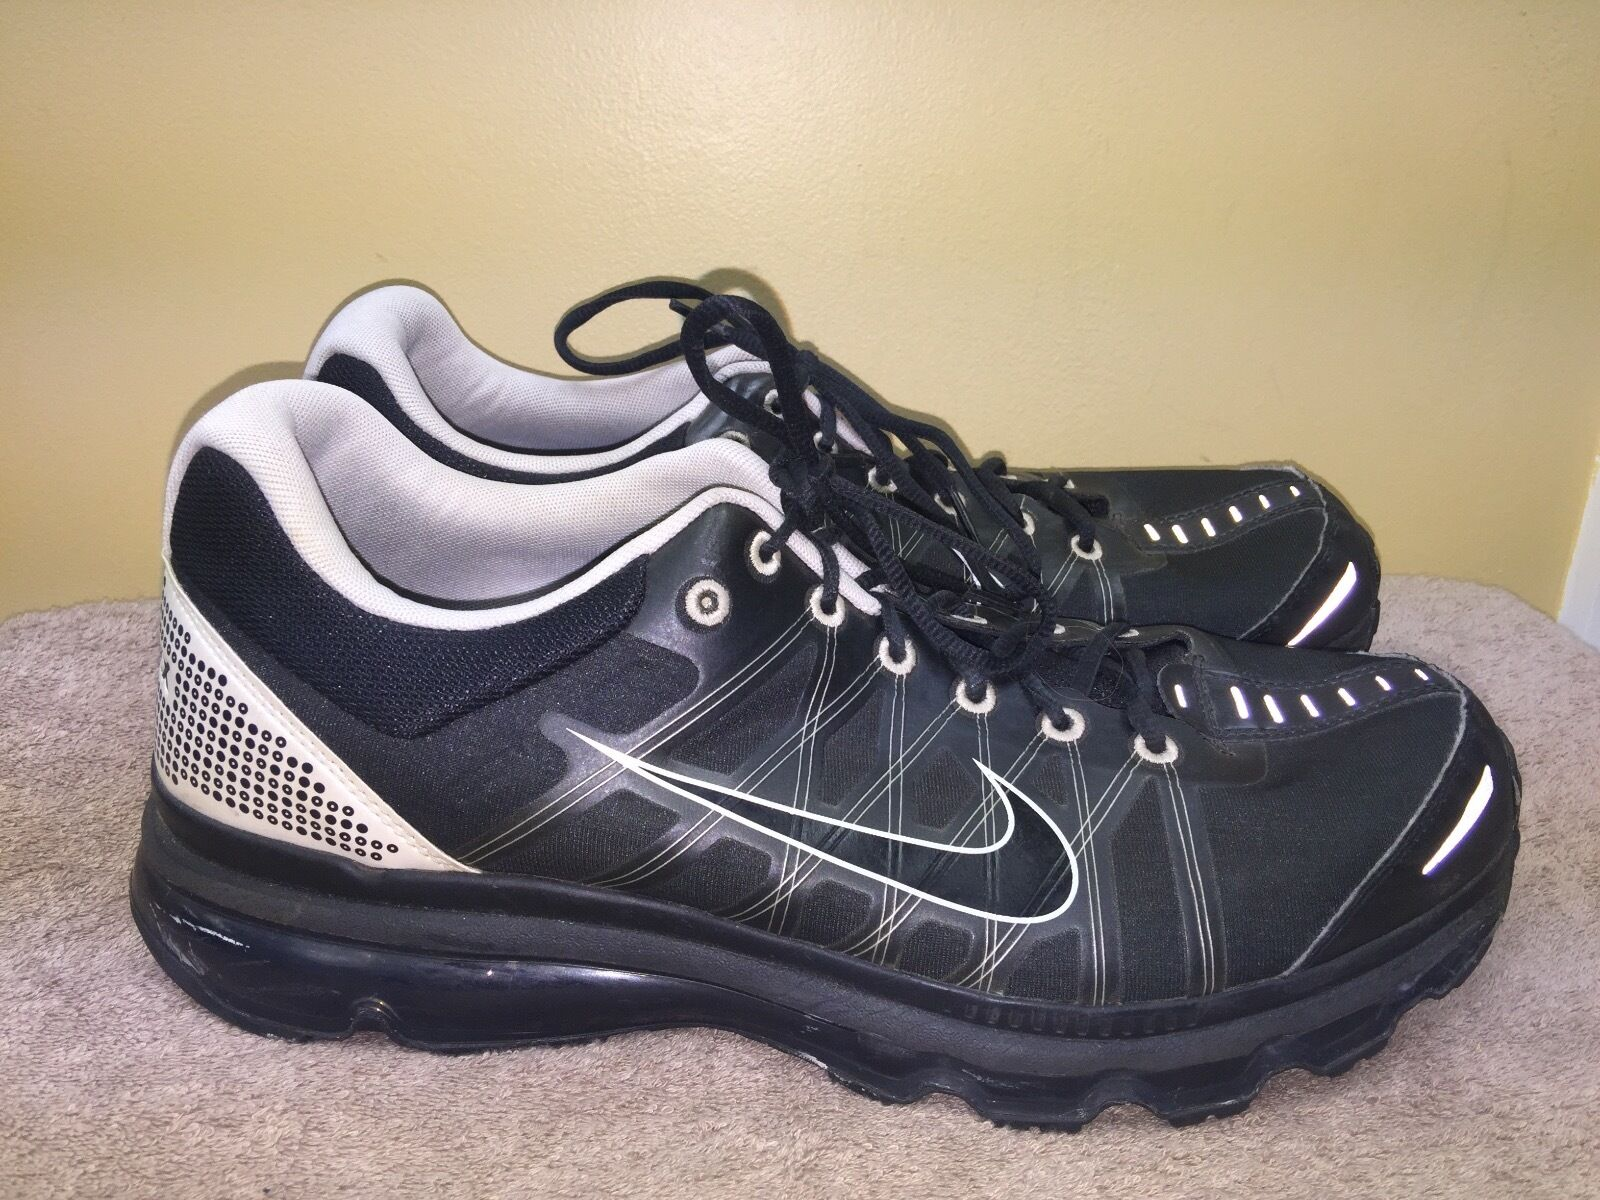 NIKE AIR MAX -BLACK-WHITE SIZE 14 [486978-010]  PRE-OWNED